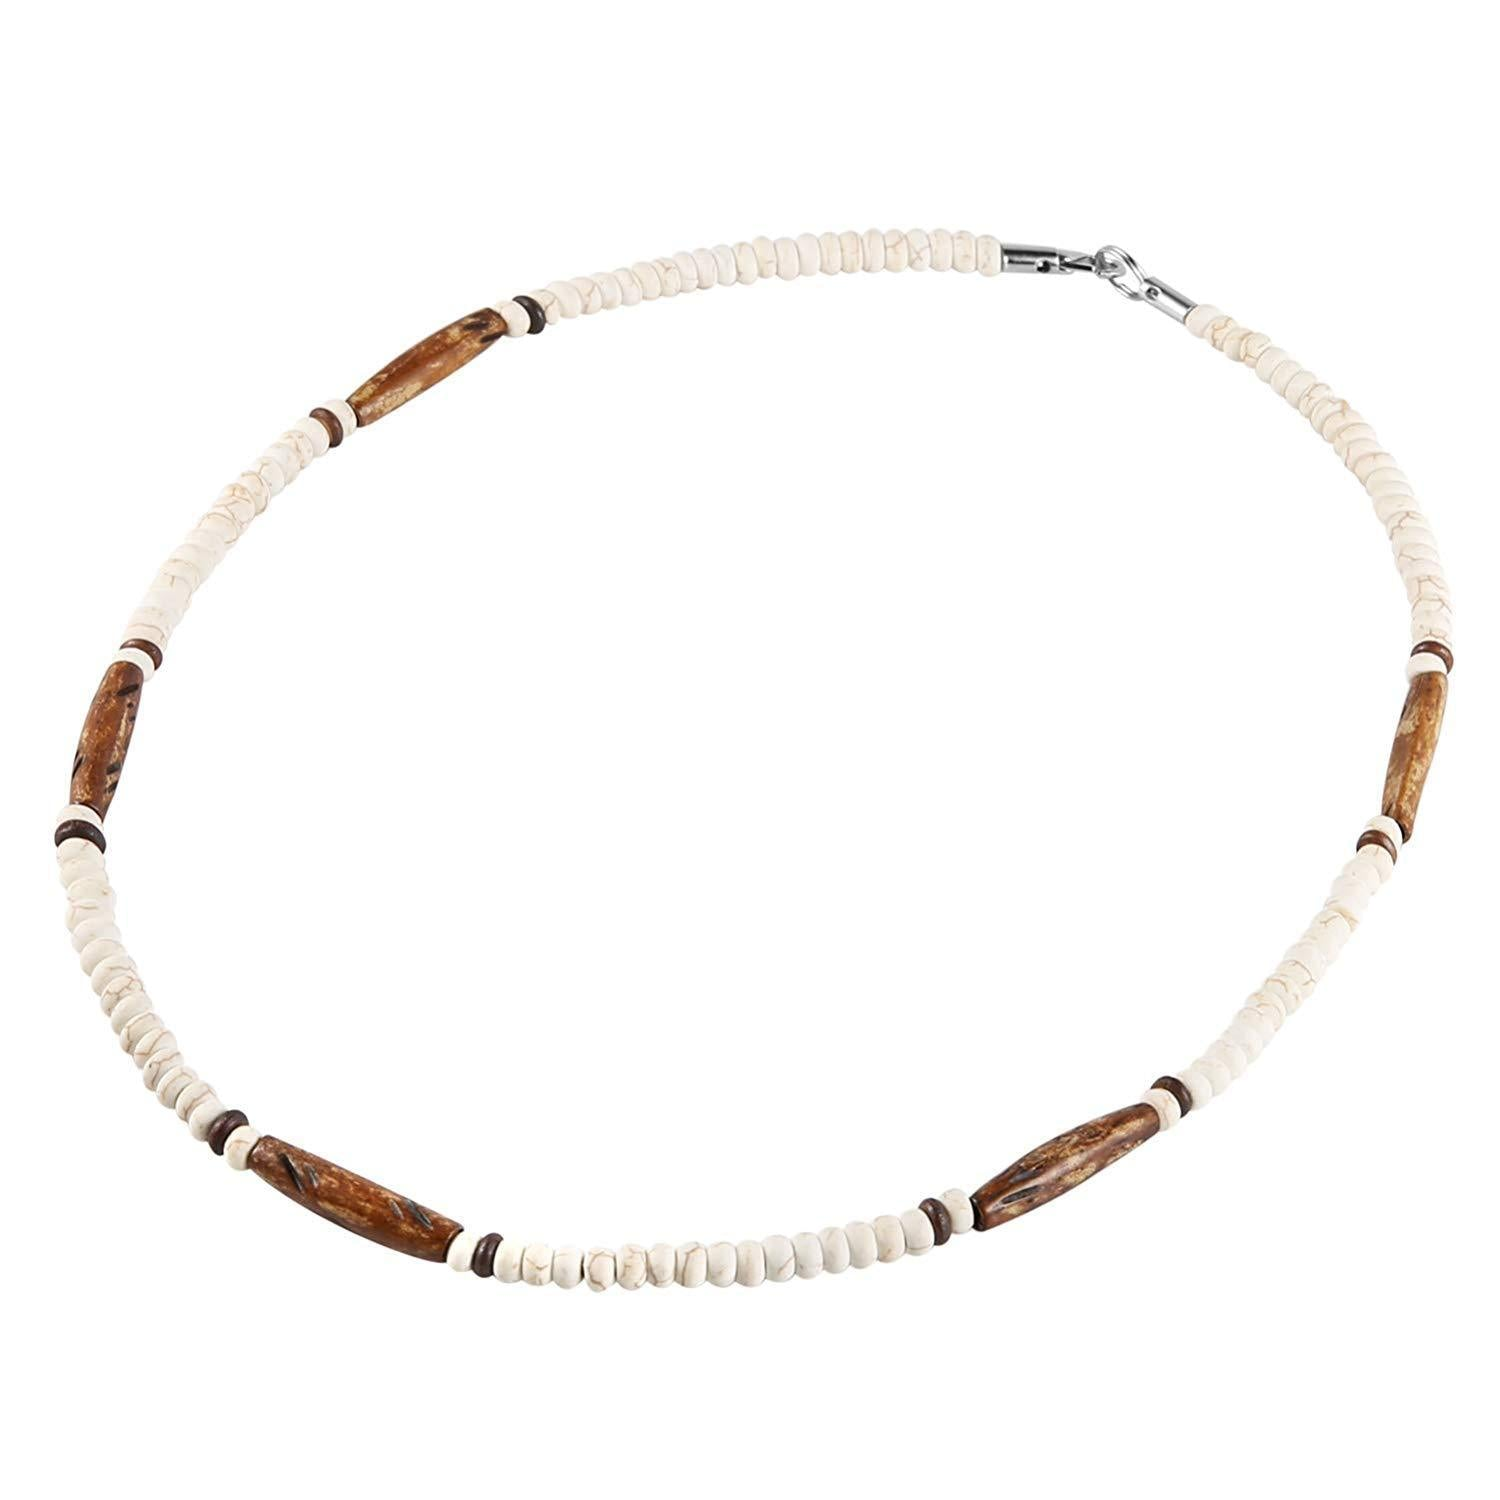 HZMAN Buffalo Bone Native American Inspired Tribal Style Collar Choker Necklace